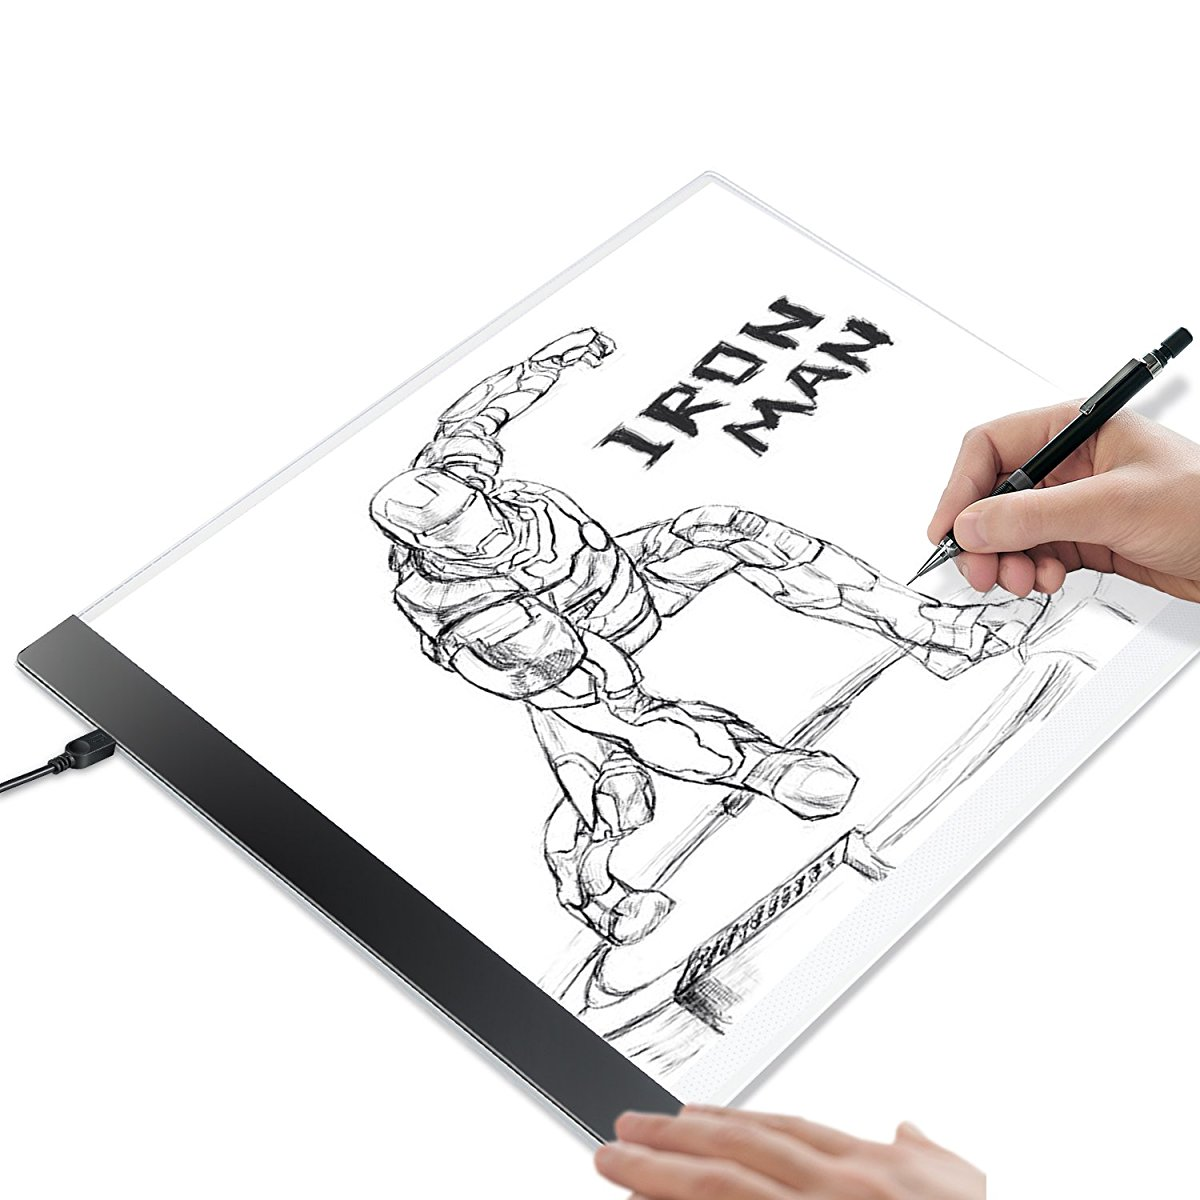 1200x1200 Tracing Light Box Tracer Portable Artists Drawing Board Copyboard